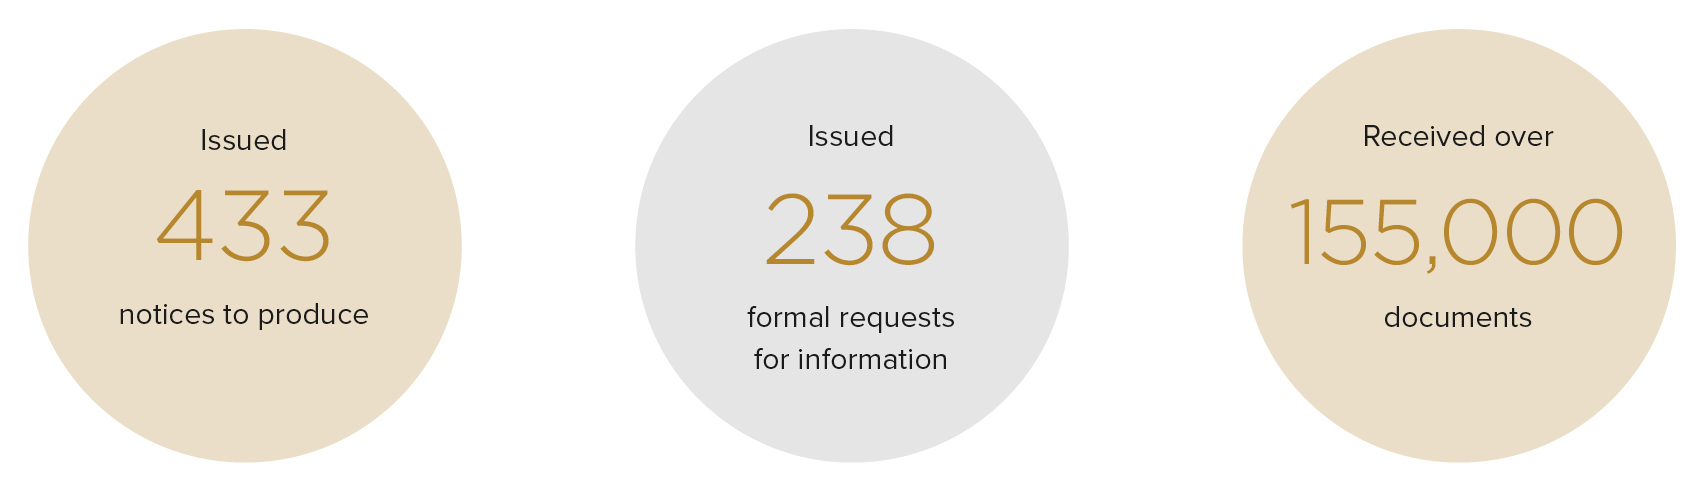 Figure 3.1- Number of notices to produce and formal requests for information issued by the Commission